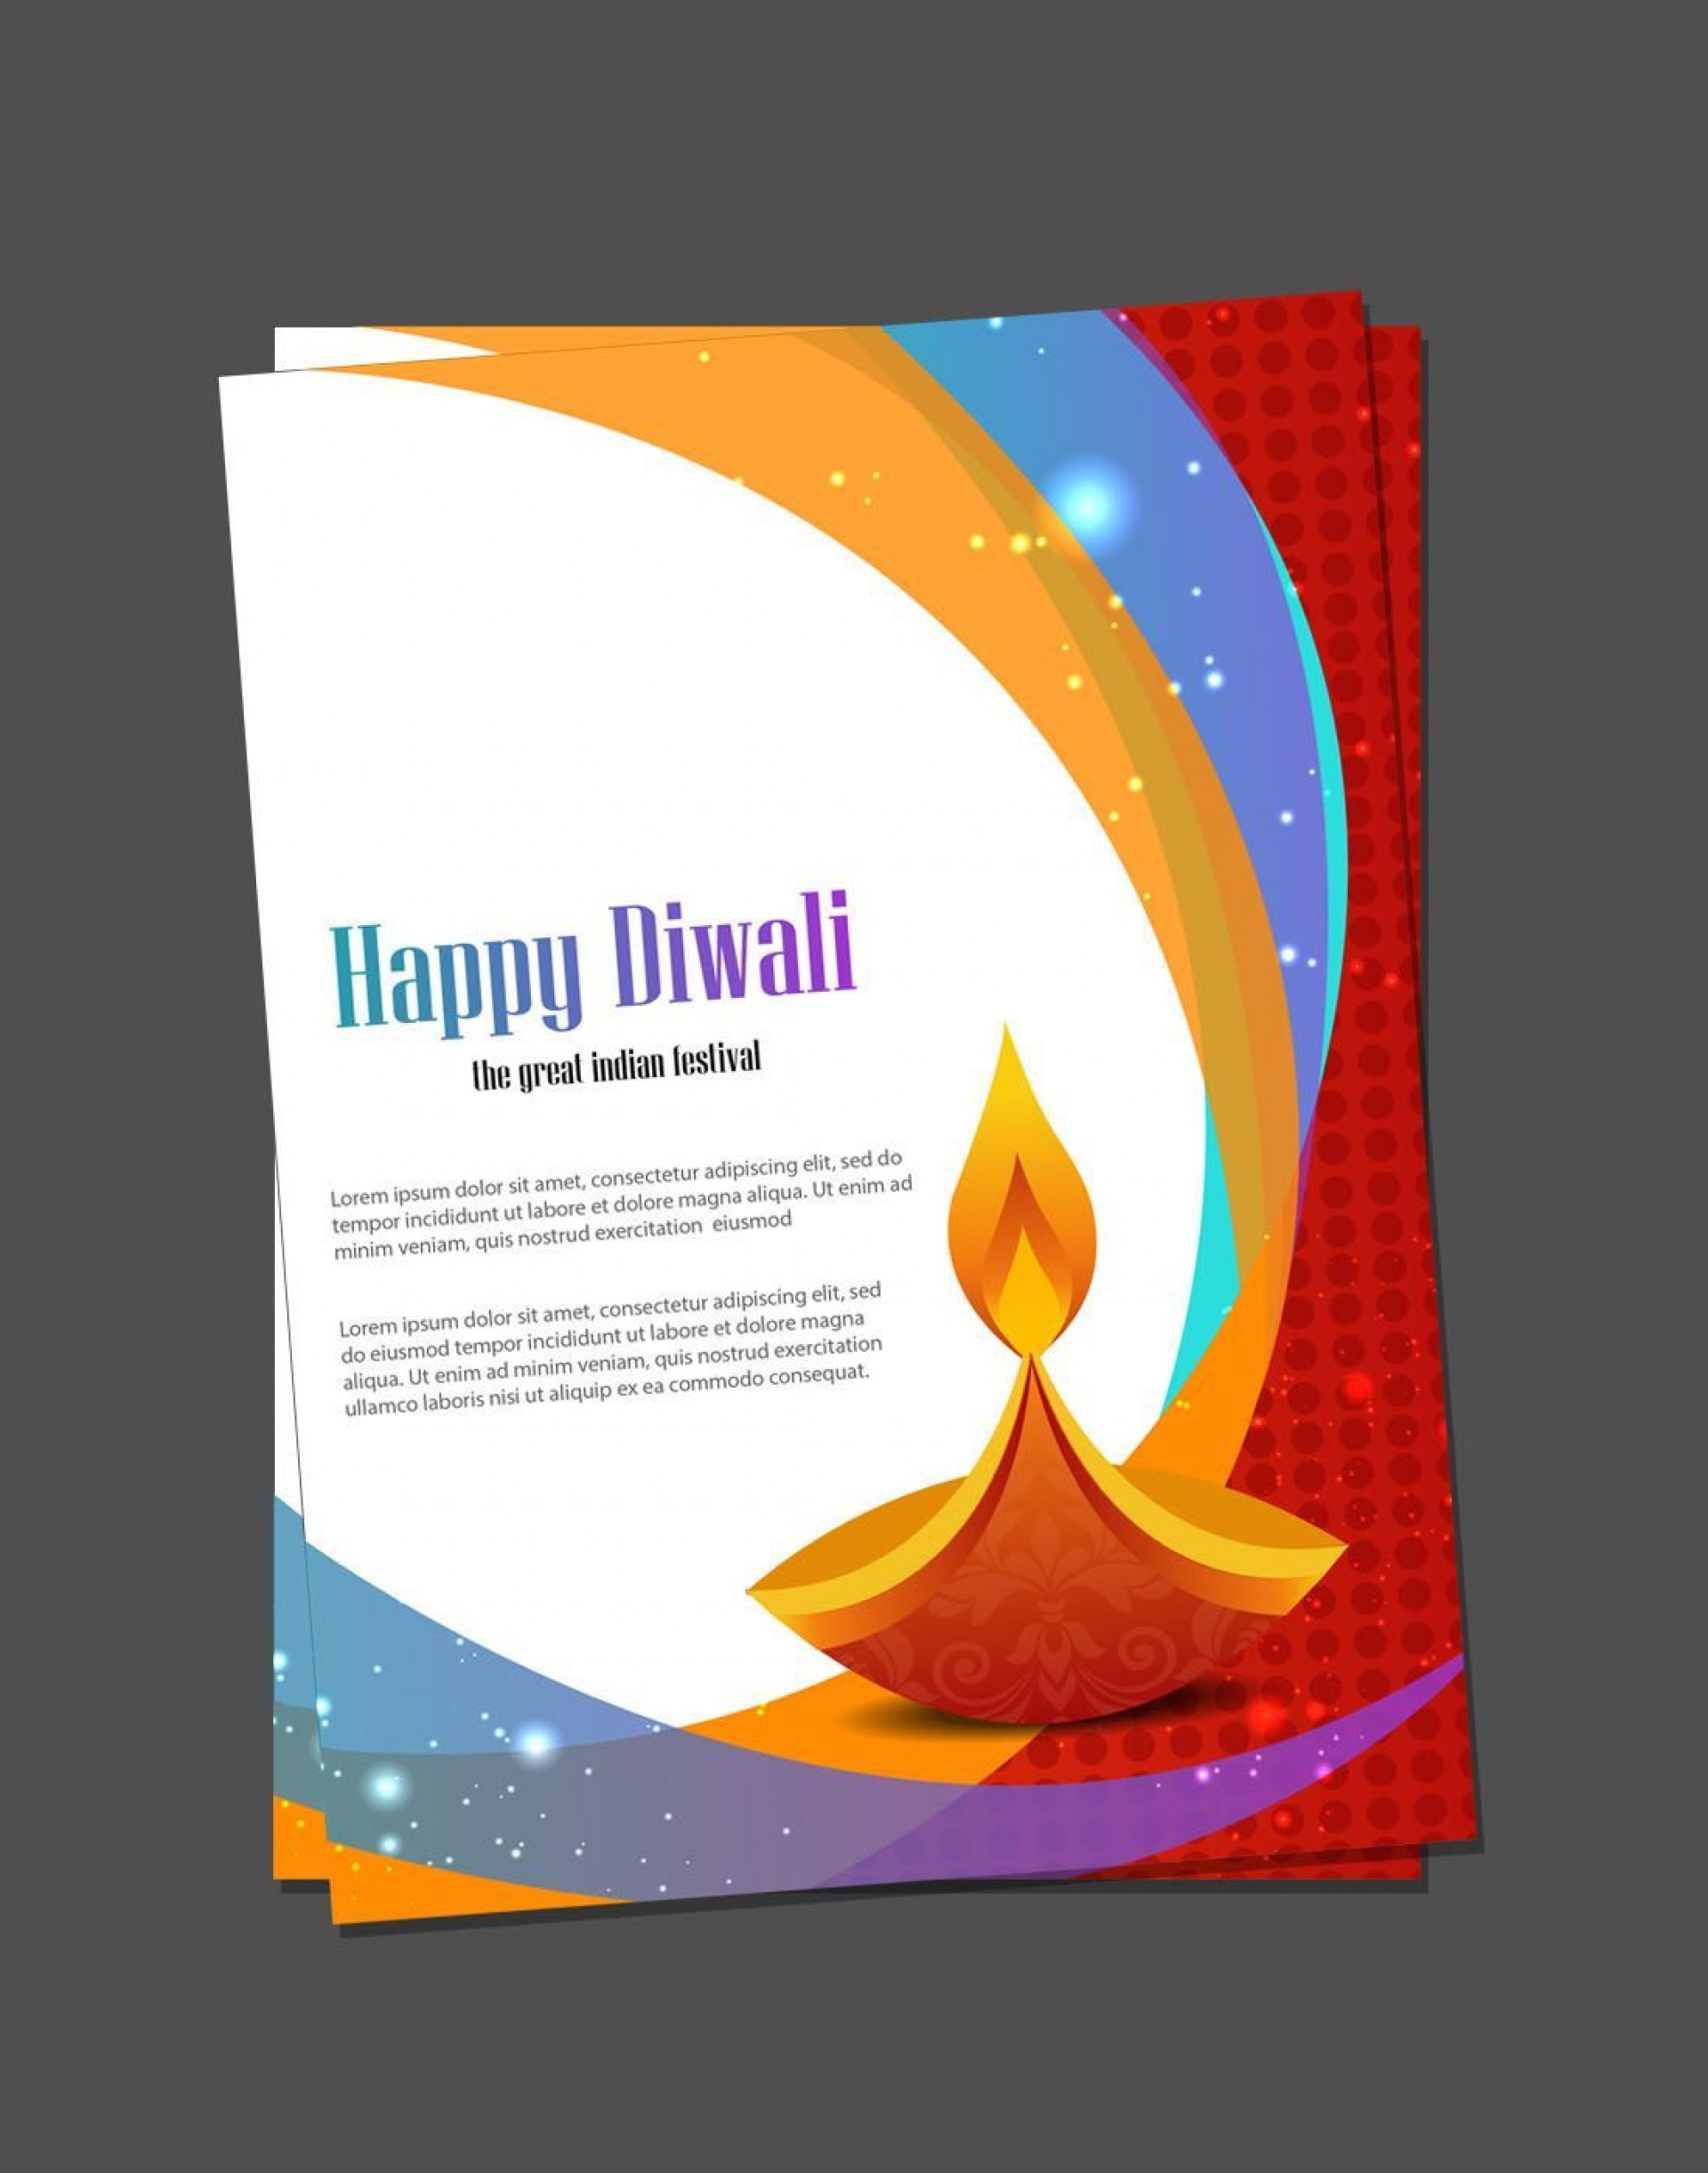 002 Shocking Diwali Party Invite Template Free High Def 1920